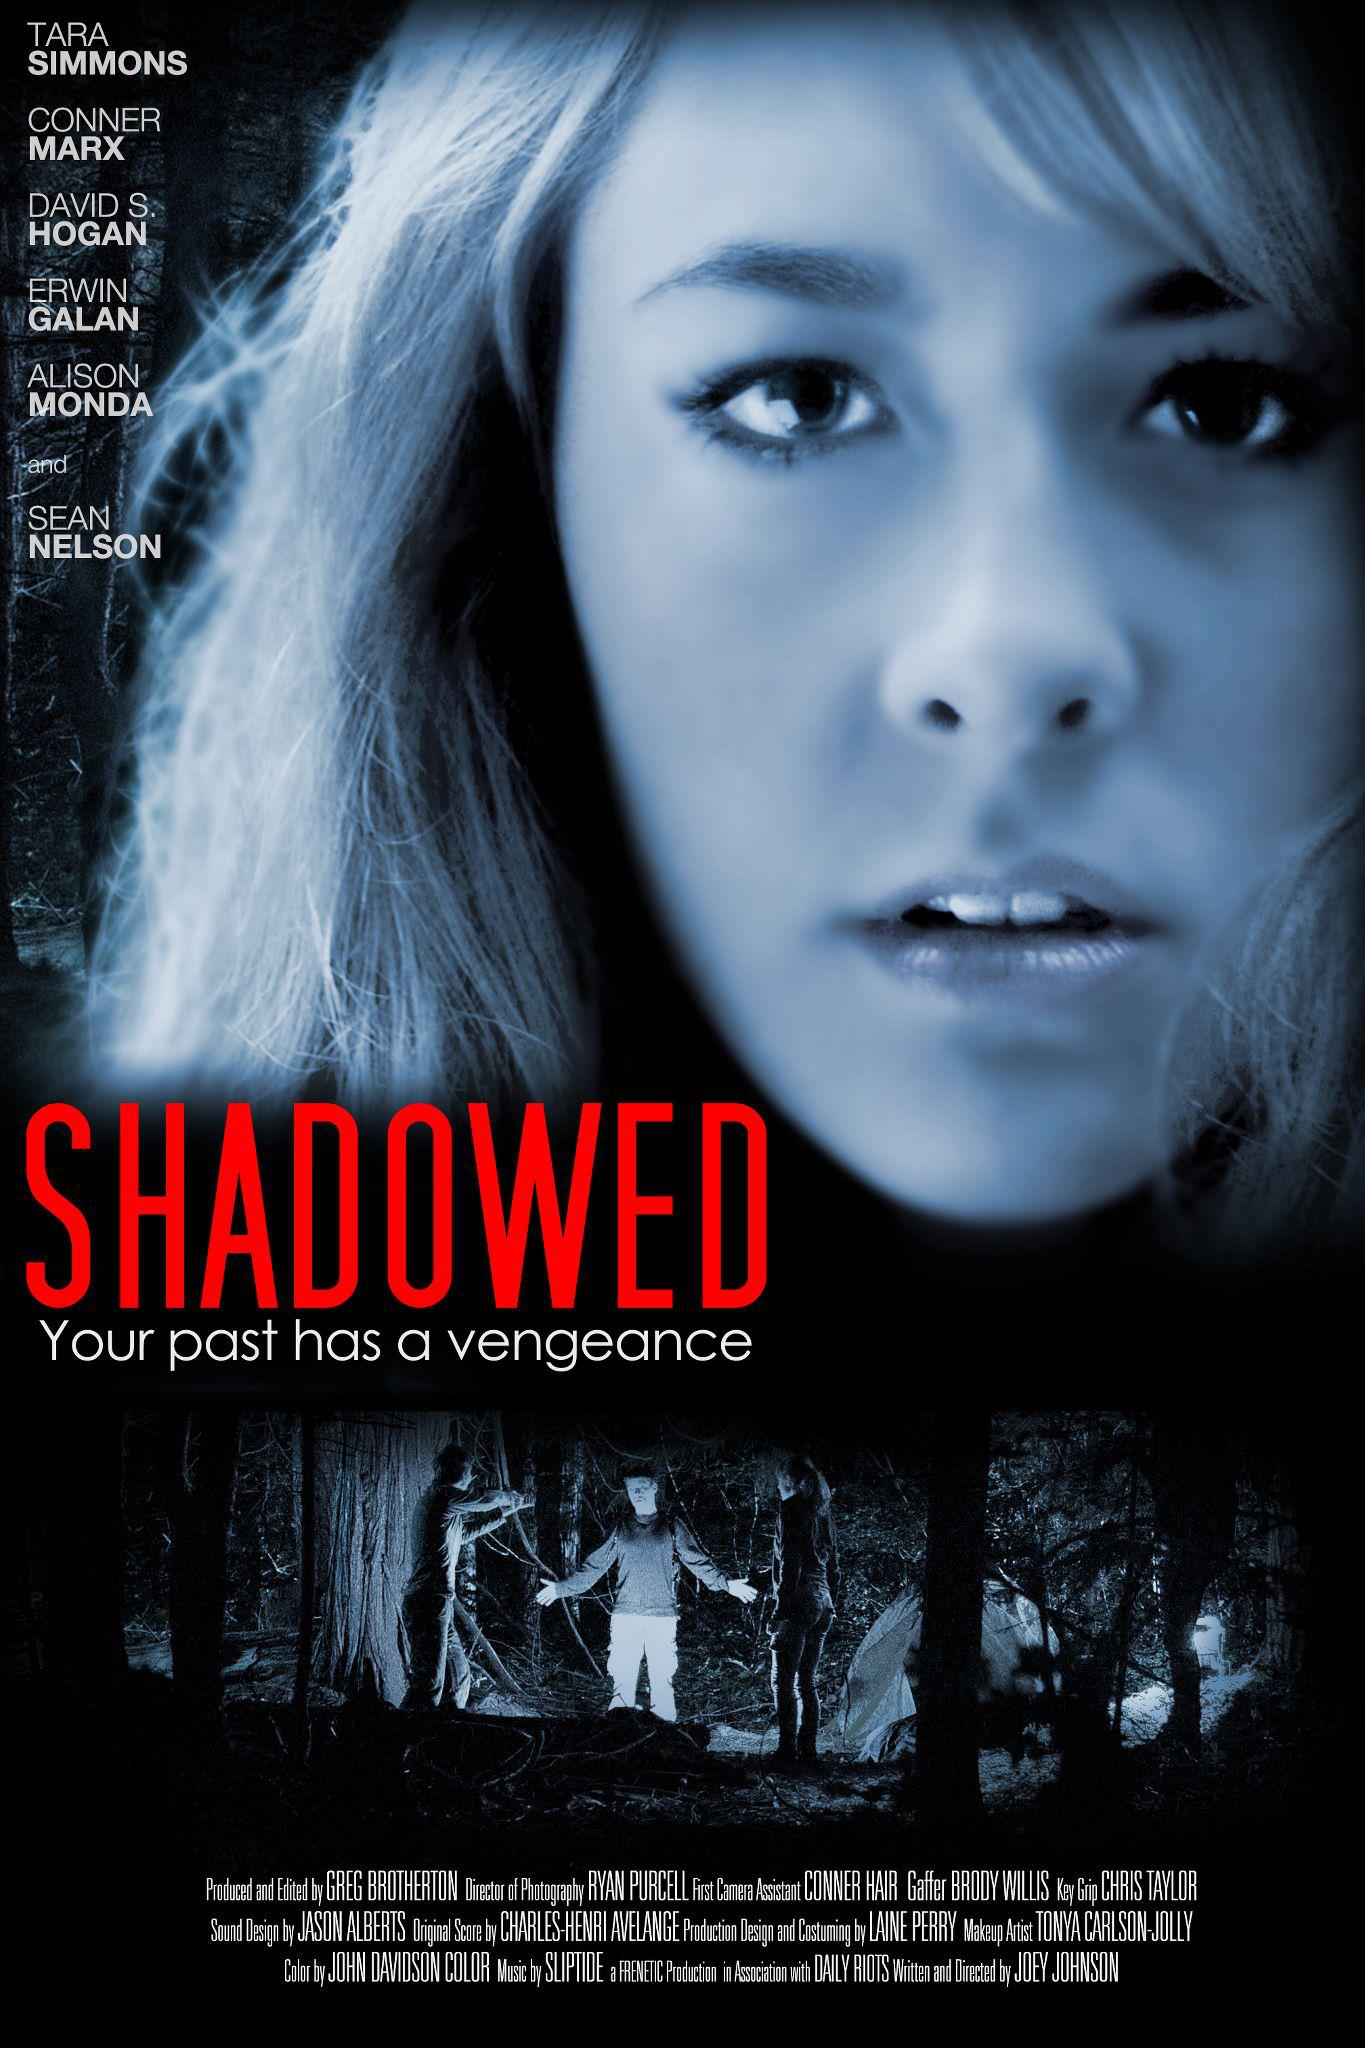 Shadowed (2013) Composer